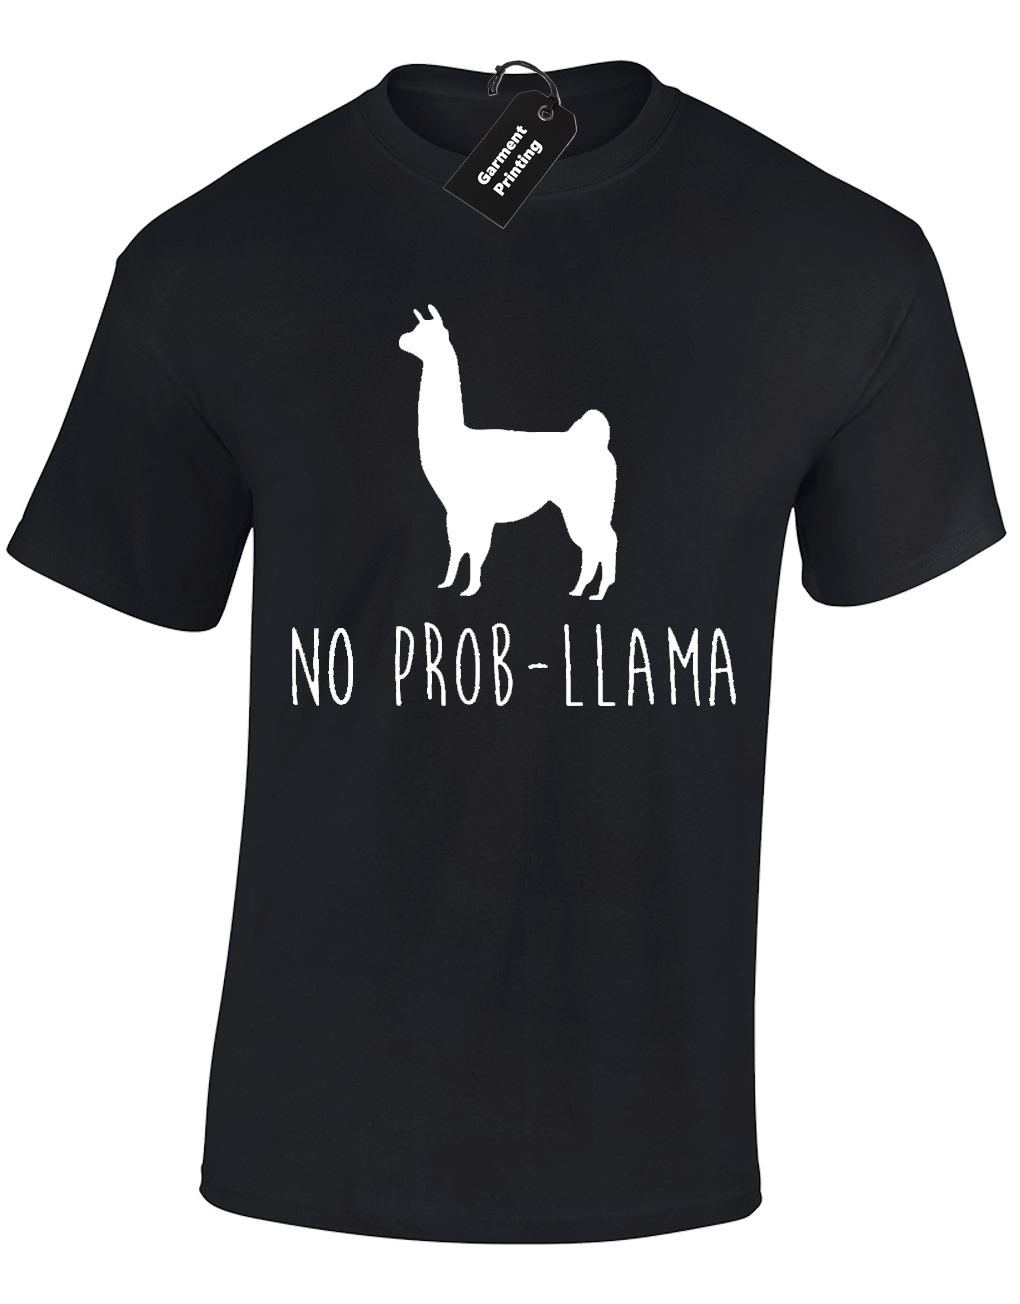 NO PROBLLAMA MENS T SHIRT FUNNY JOKE COMEDY QUALITY PREMIUM DESIGN TOP S - 5XL